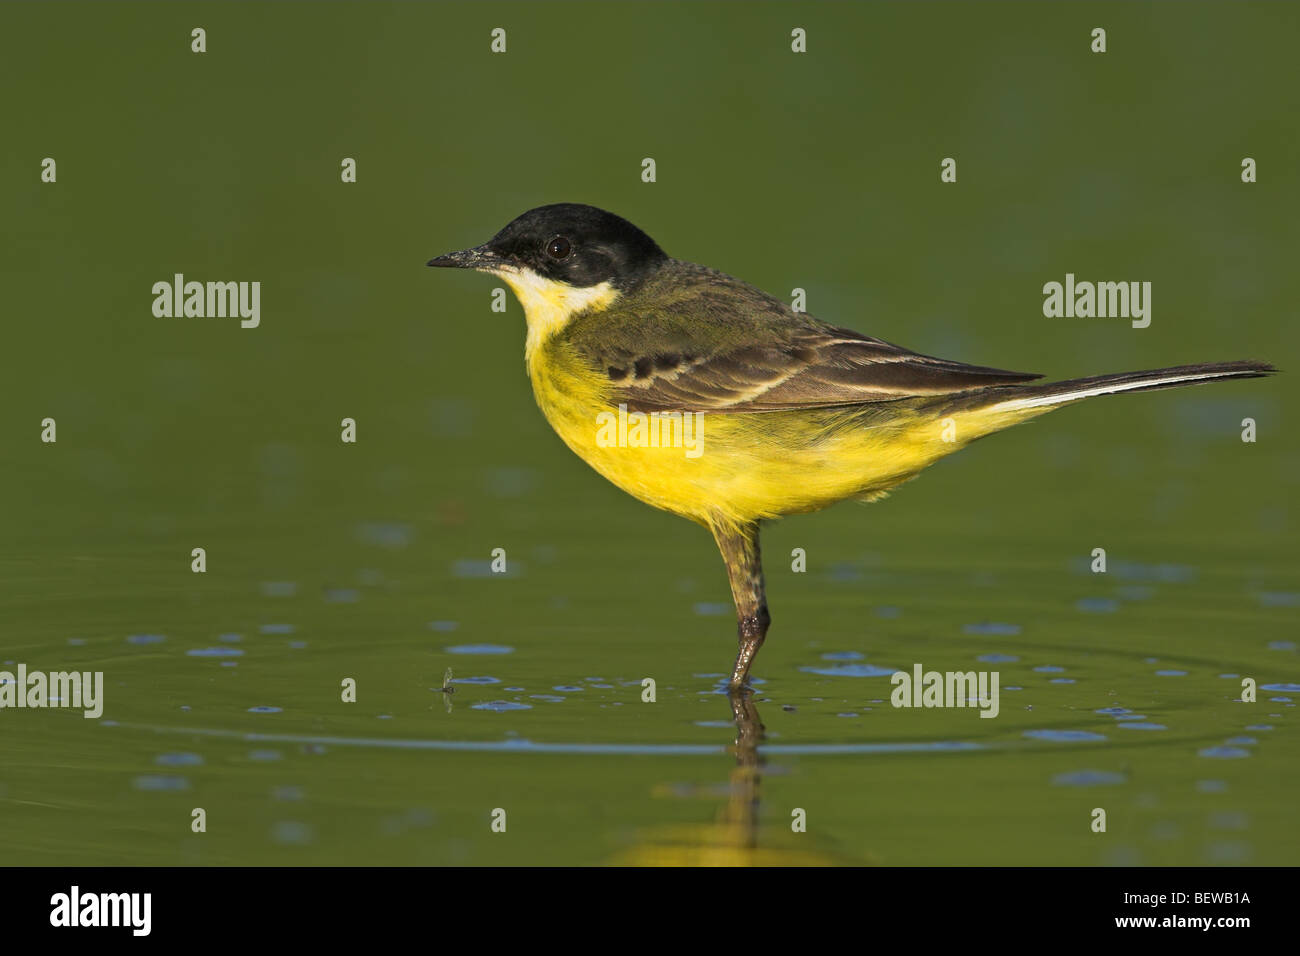 Black-headed Wagtail (Motacilla flava feldegg) standing in water, side view - Stock Image